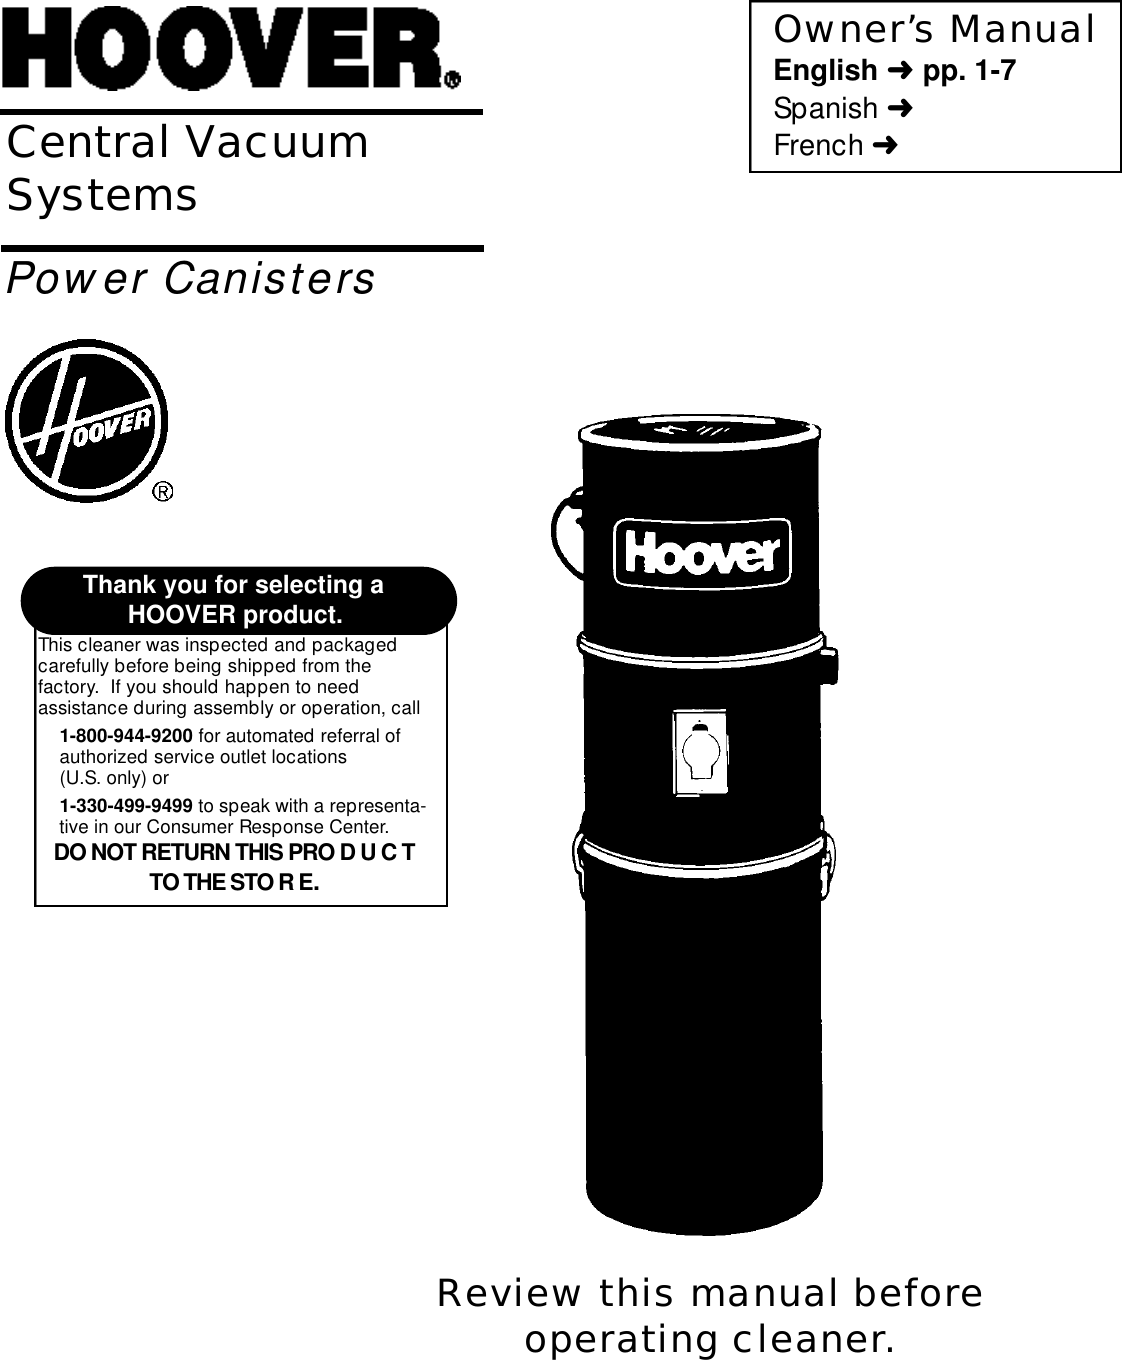 Hoover Central Vacuum Systems Users Manual Wiring Diagram Page 1 Of 12